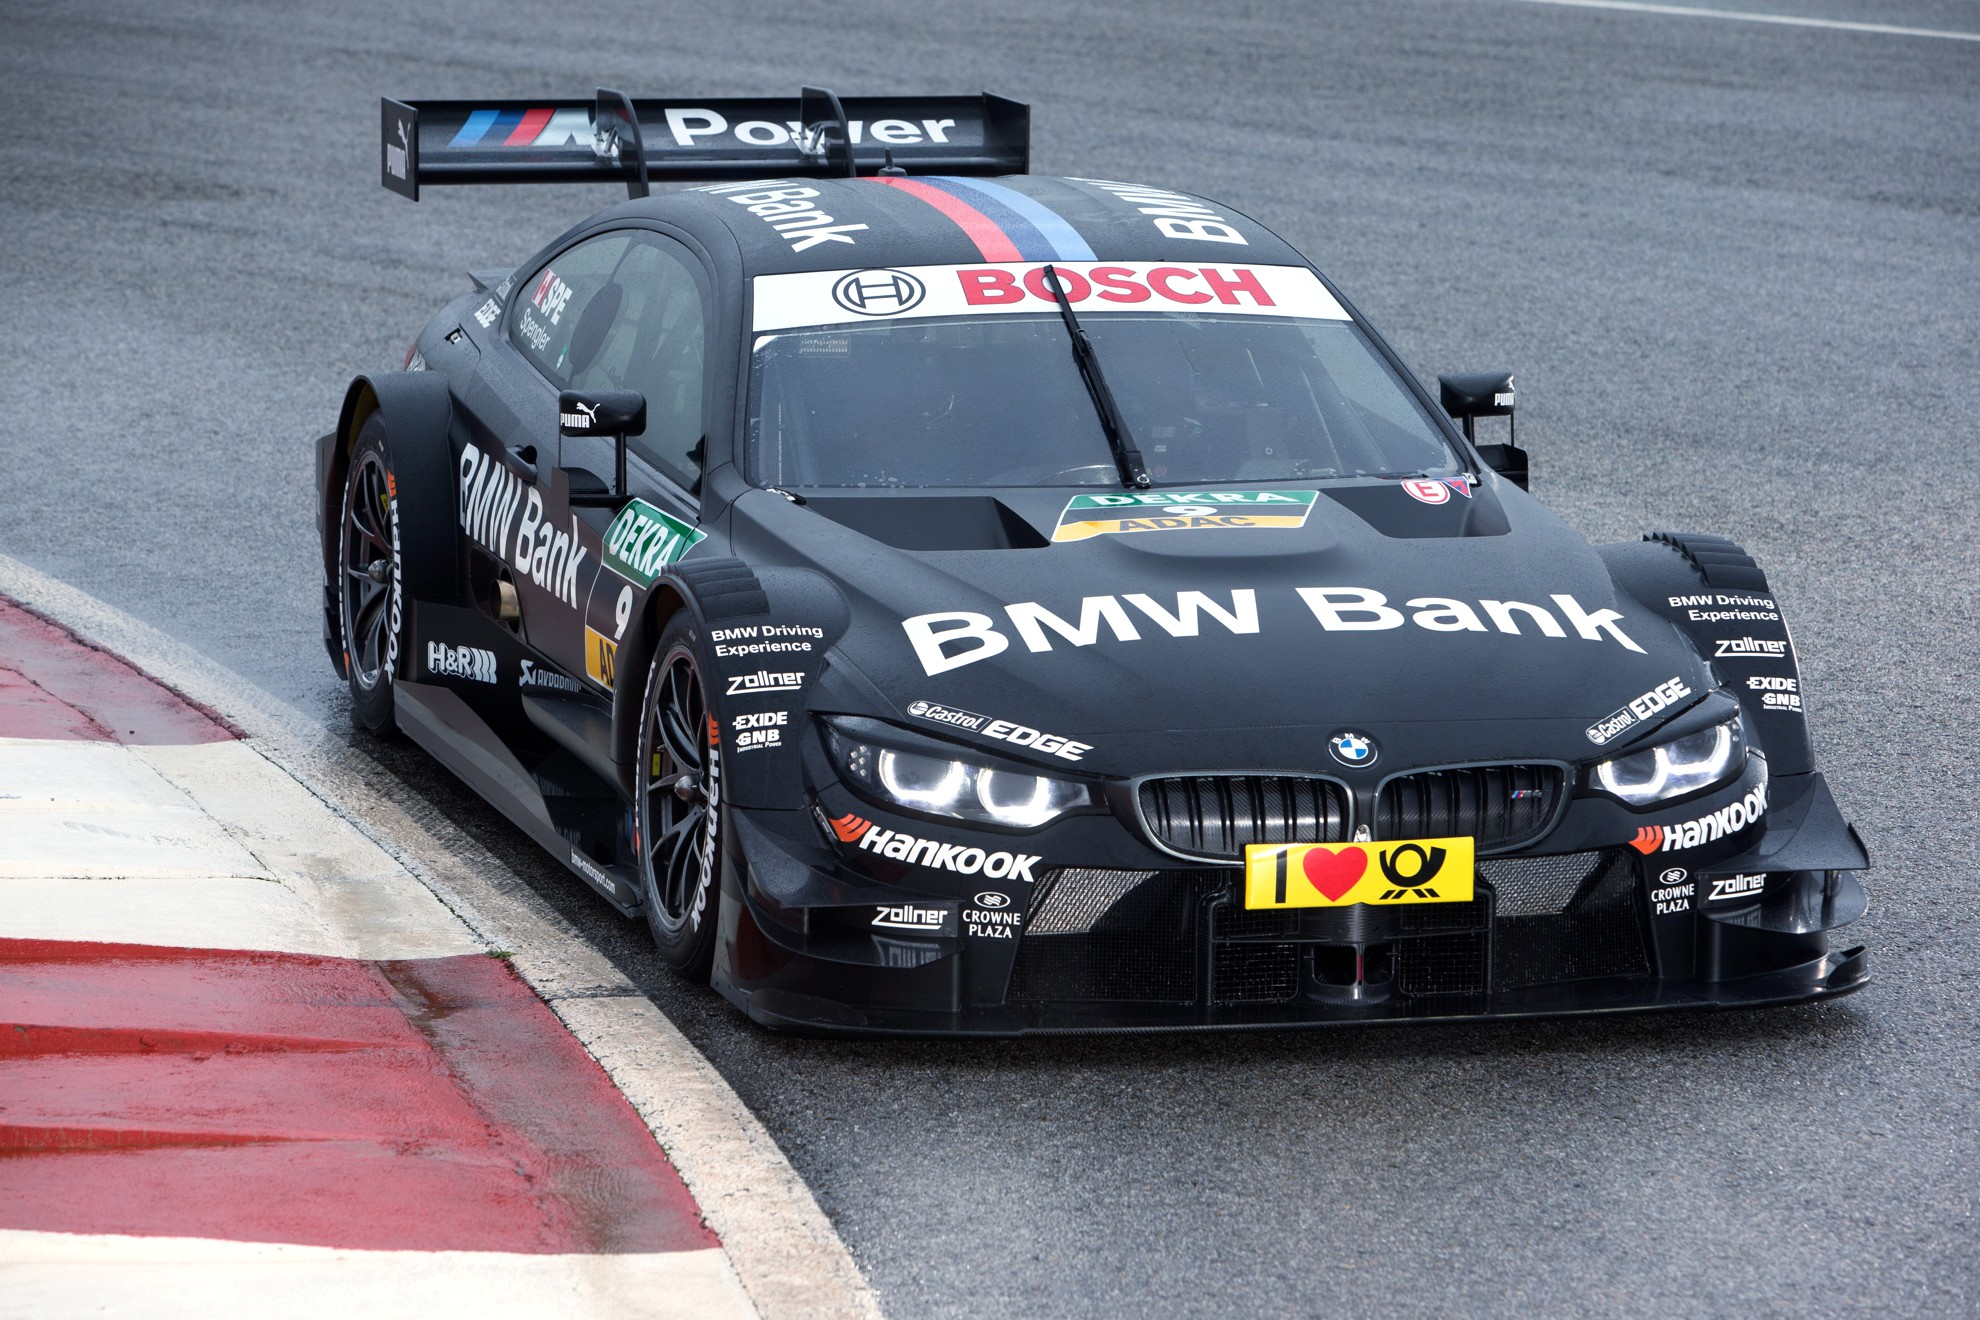 Bmw M4 Dtm Race Car Designs Confirmed